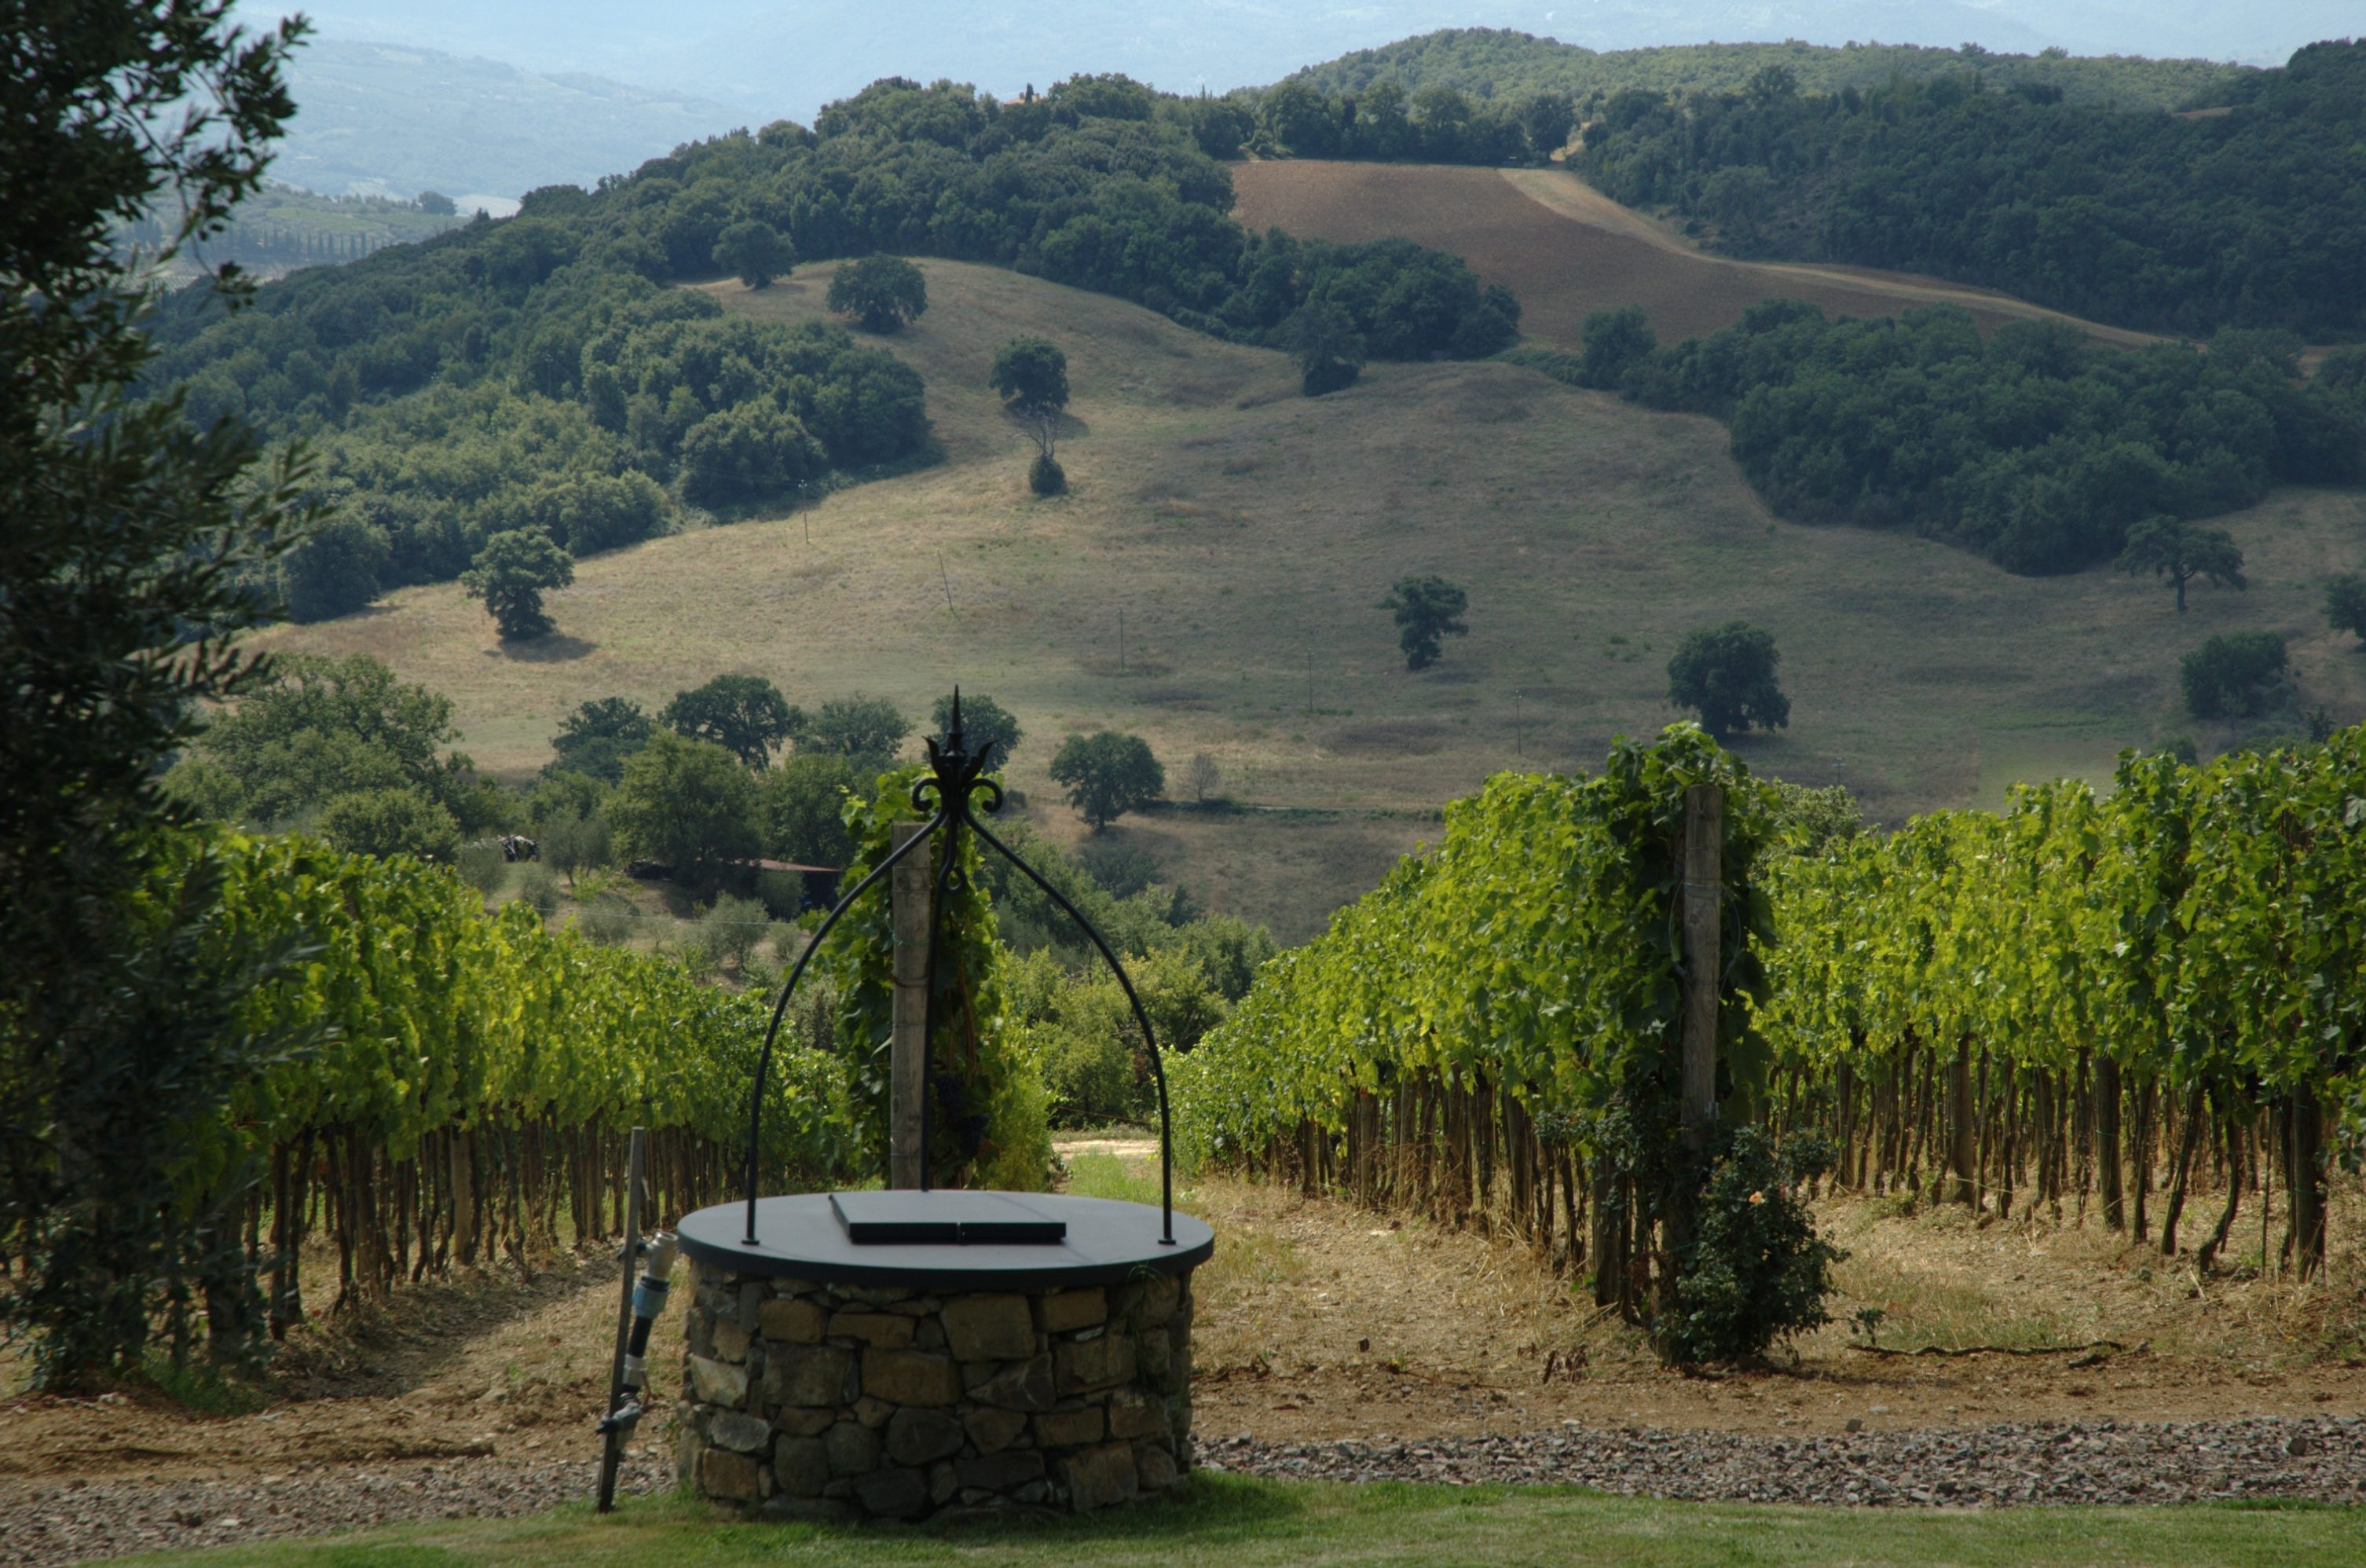 Olmo vineyard at Gianni Brunelli winery